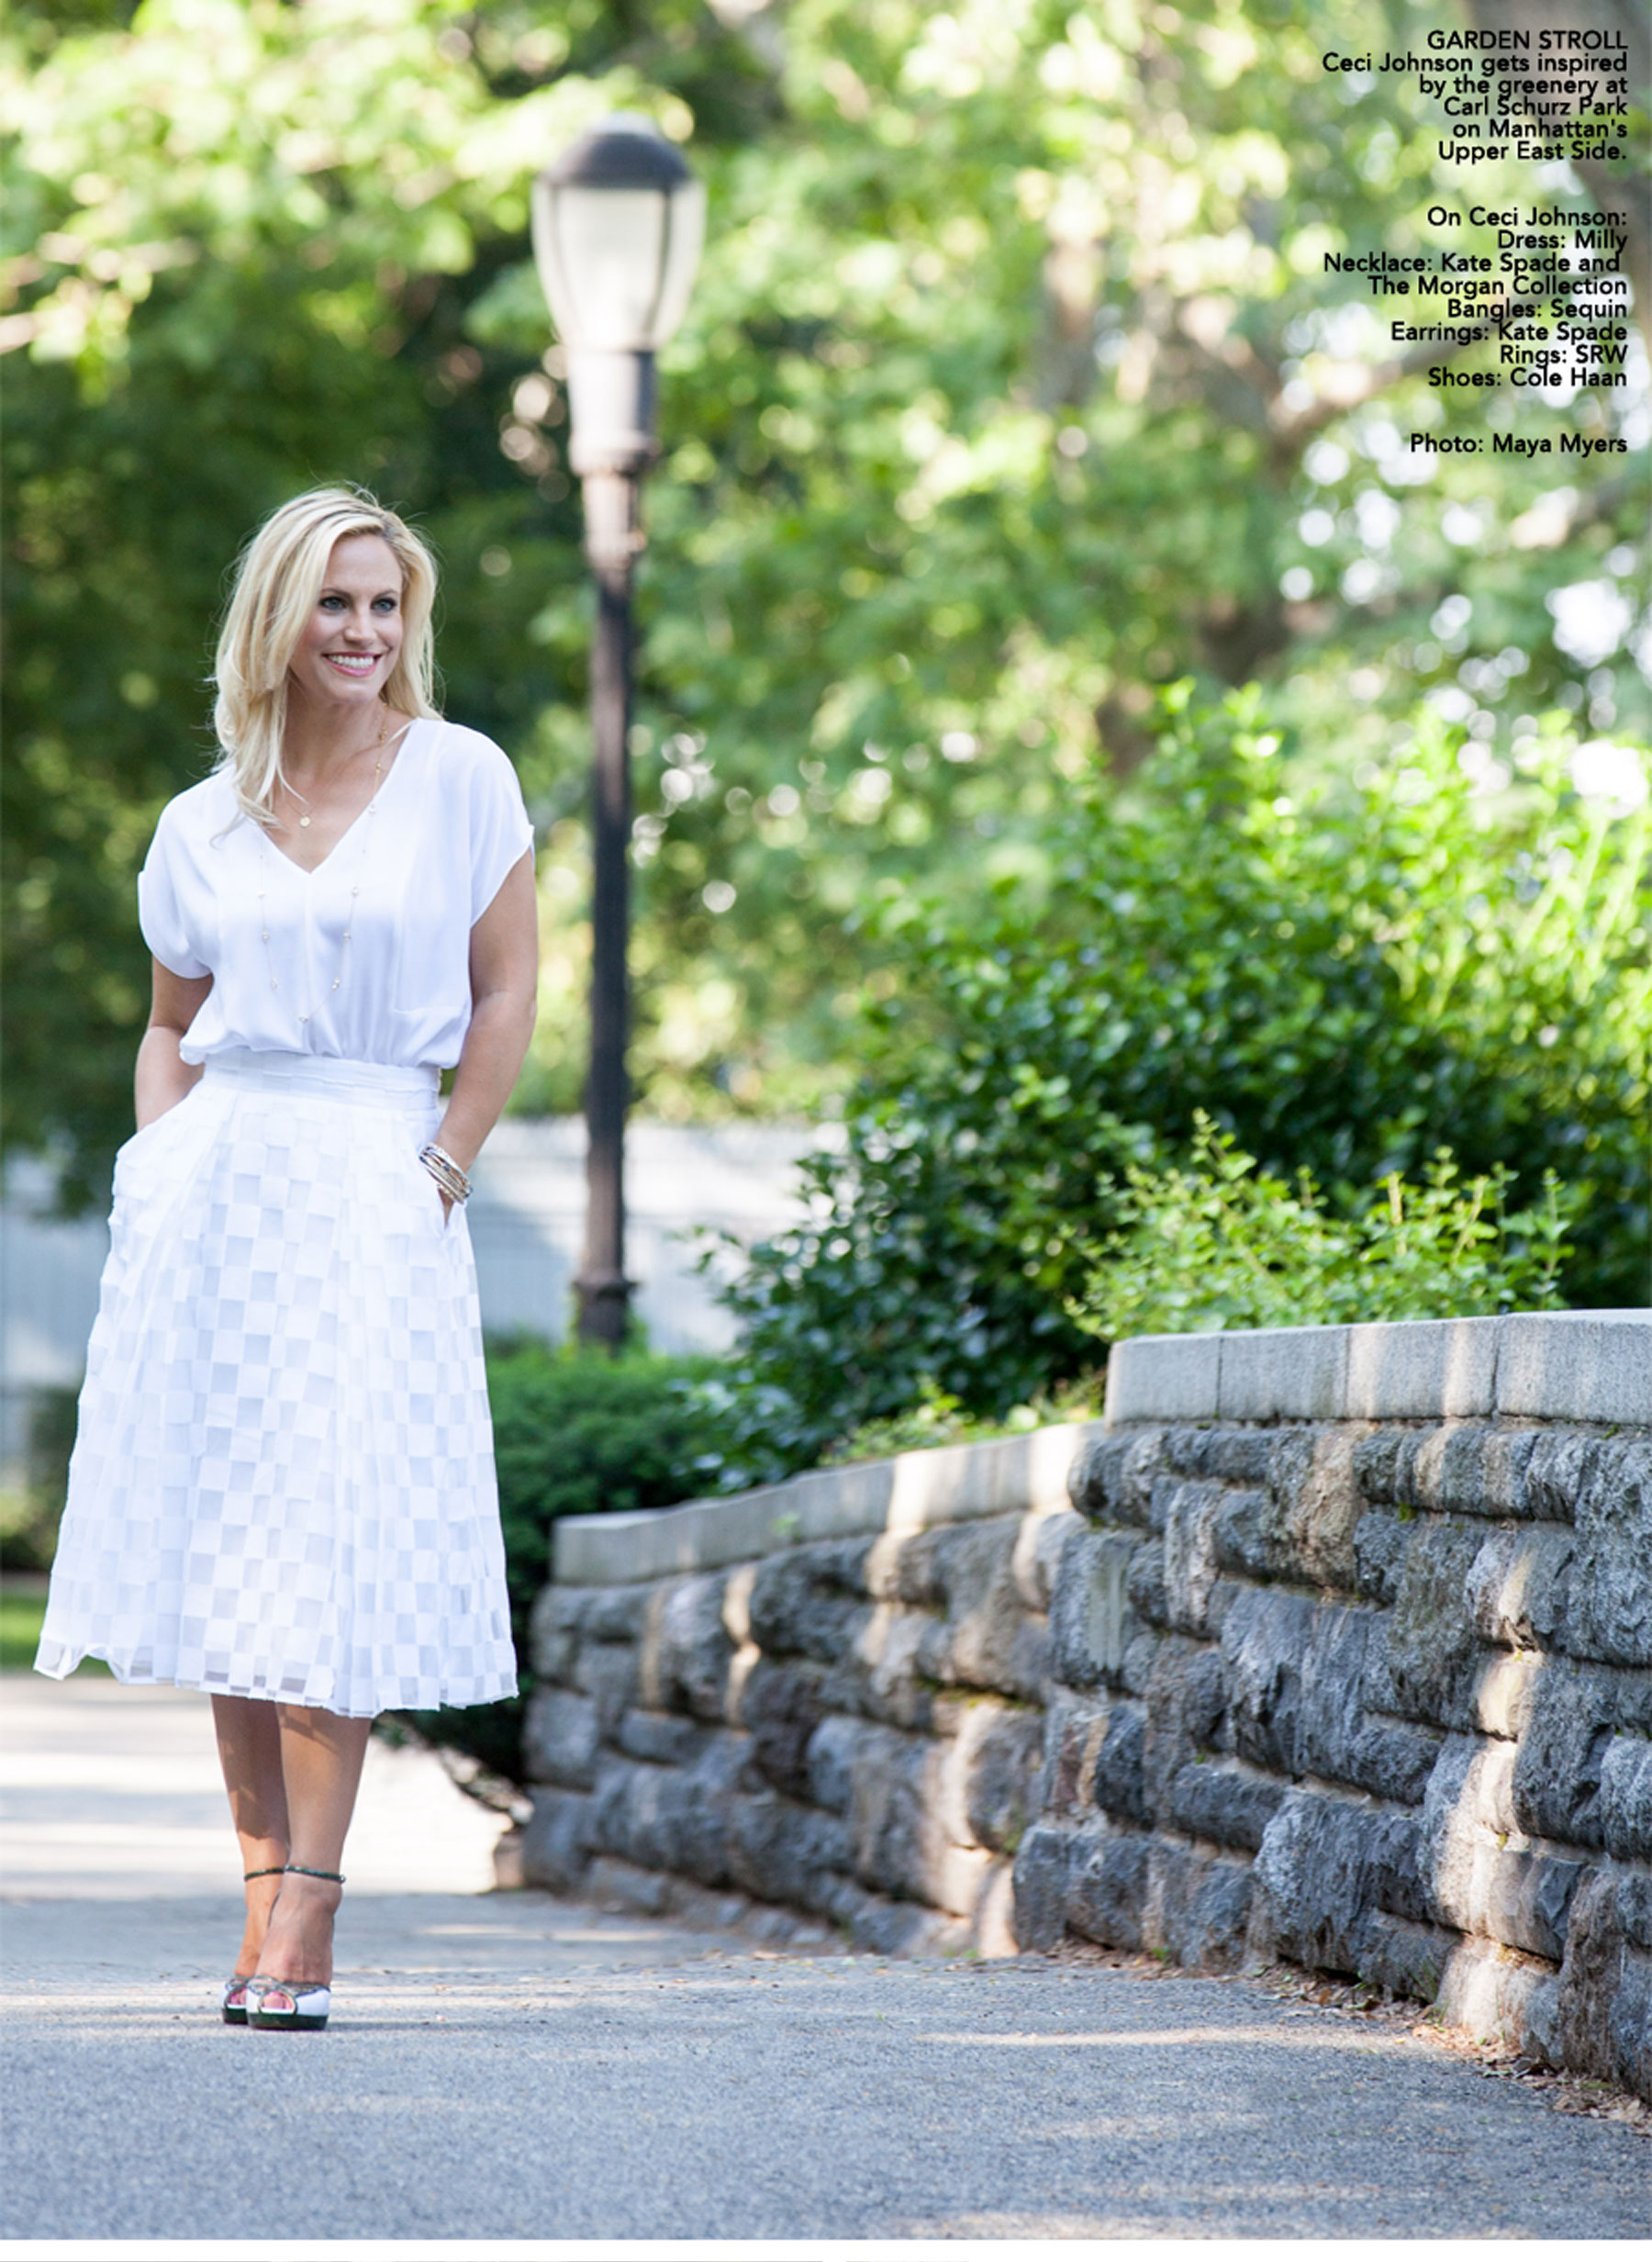 Ceci Johnson of Ceci New York - GARDEN STROLL: Ceci Johnson gets inspired by the greenery at Carl Schurz Park on Manhattan's Upper East Side. On Ceci Johnson: Dress: Milly. Necklace: Kate Spade and The Morgan Collection.  Bangles: Sequin. Earrings: Kate Spade. Rings: SRW. Shoes: Cole Haan. Photo: Maya Myers